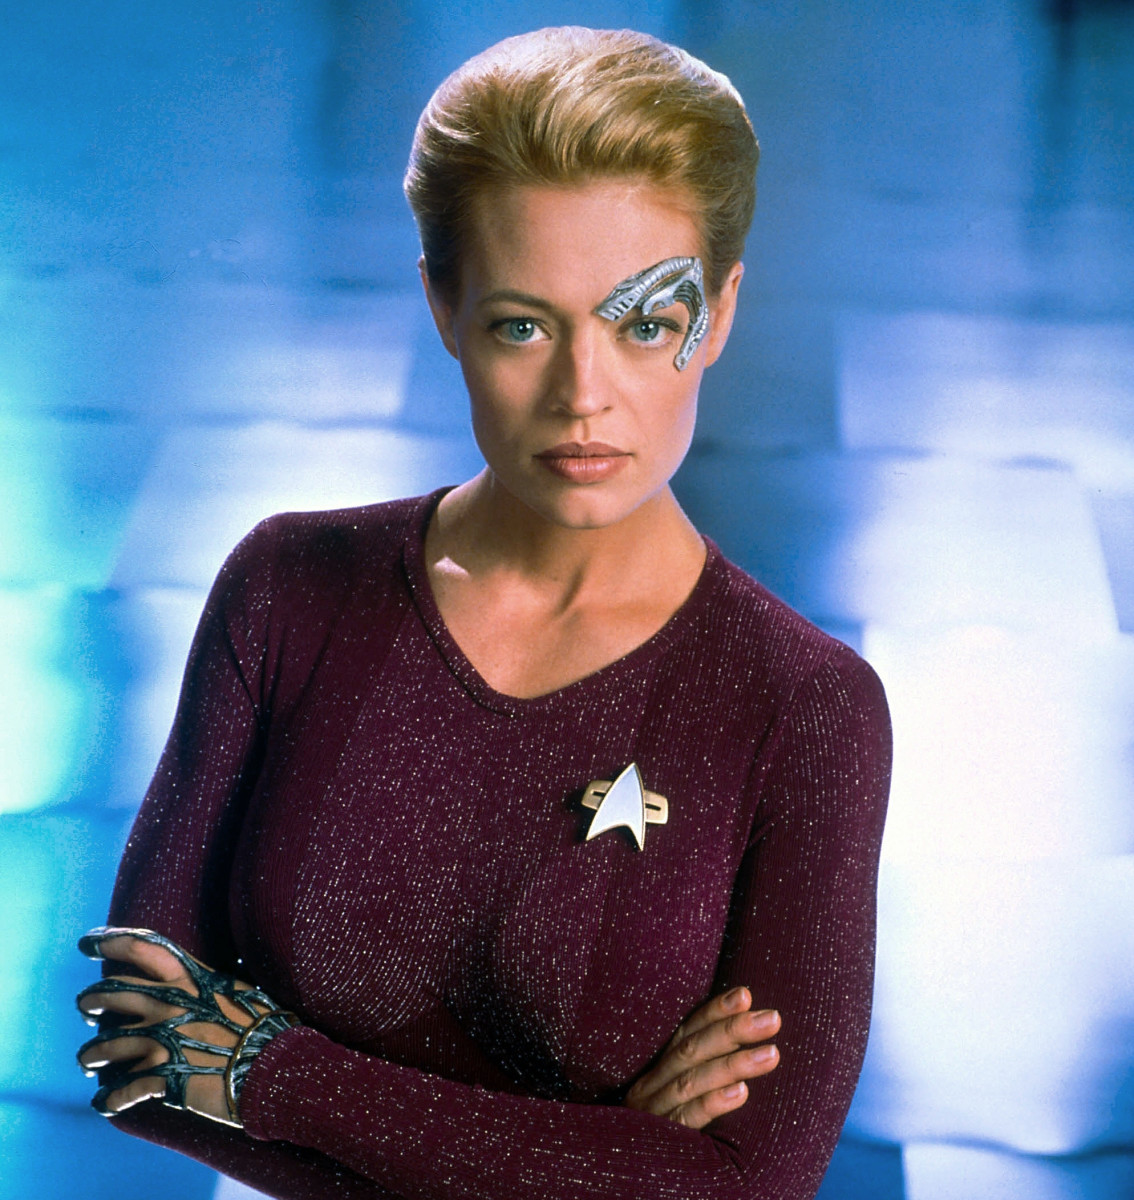 MAC Star Trek Collection: Seven of Nine